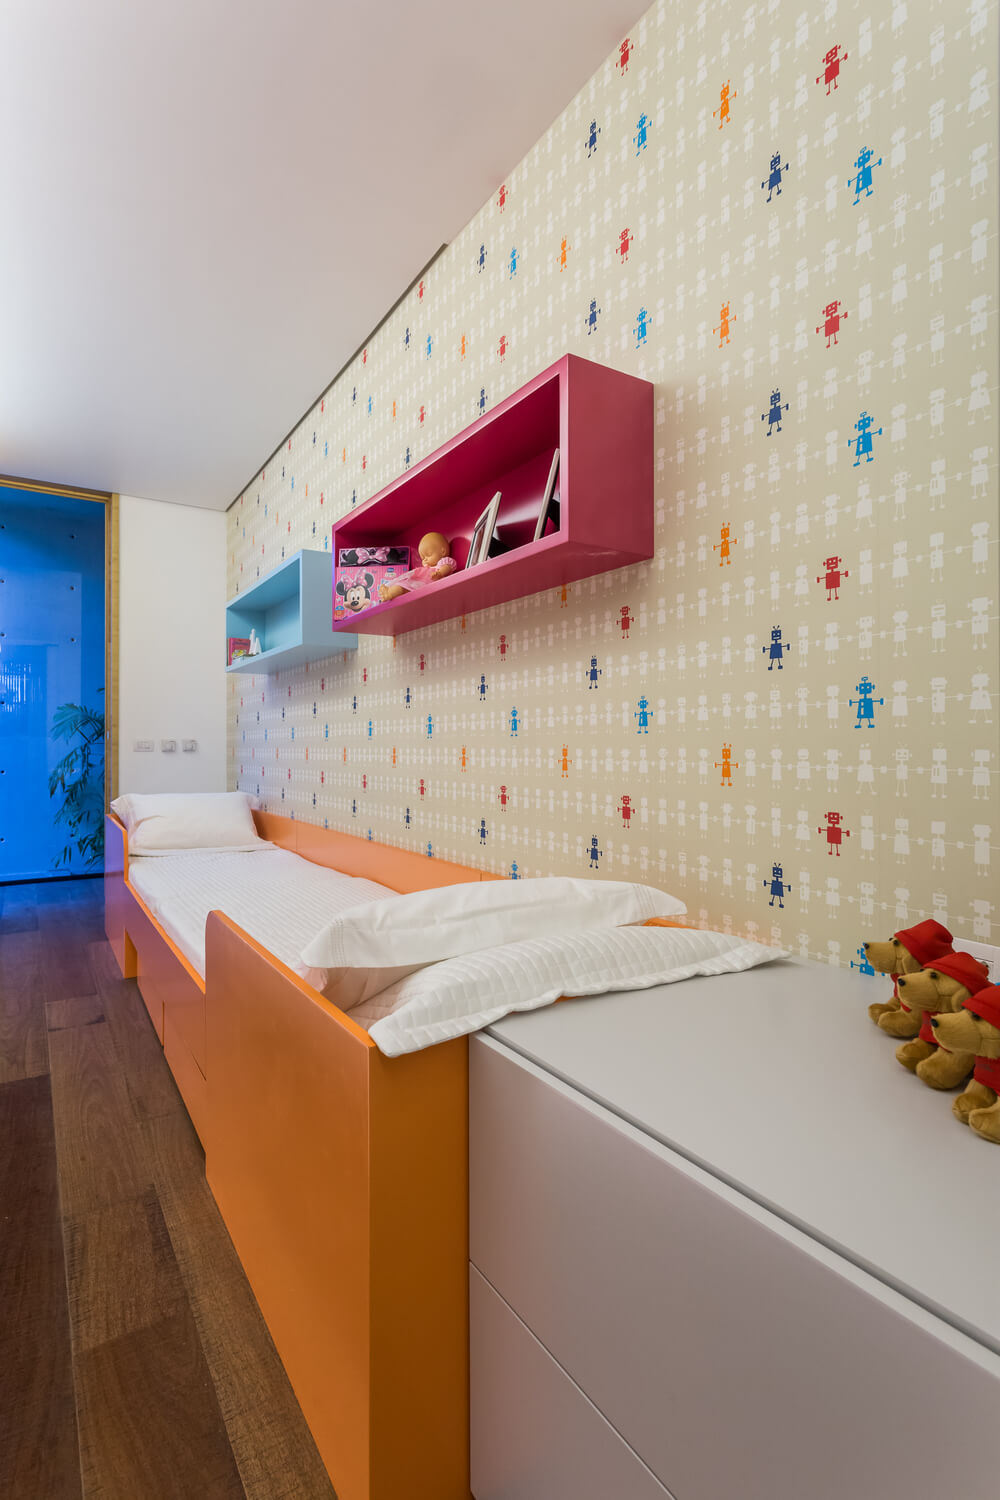 This is a child's bedroom that has a large orange bed, colorful hanging shelves above and a colorful patterned wallpaper.